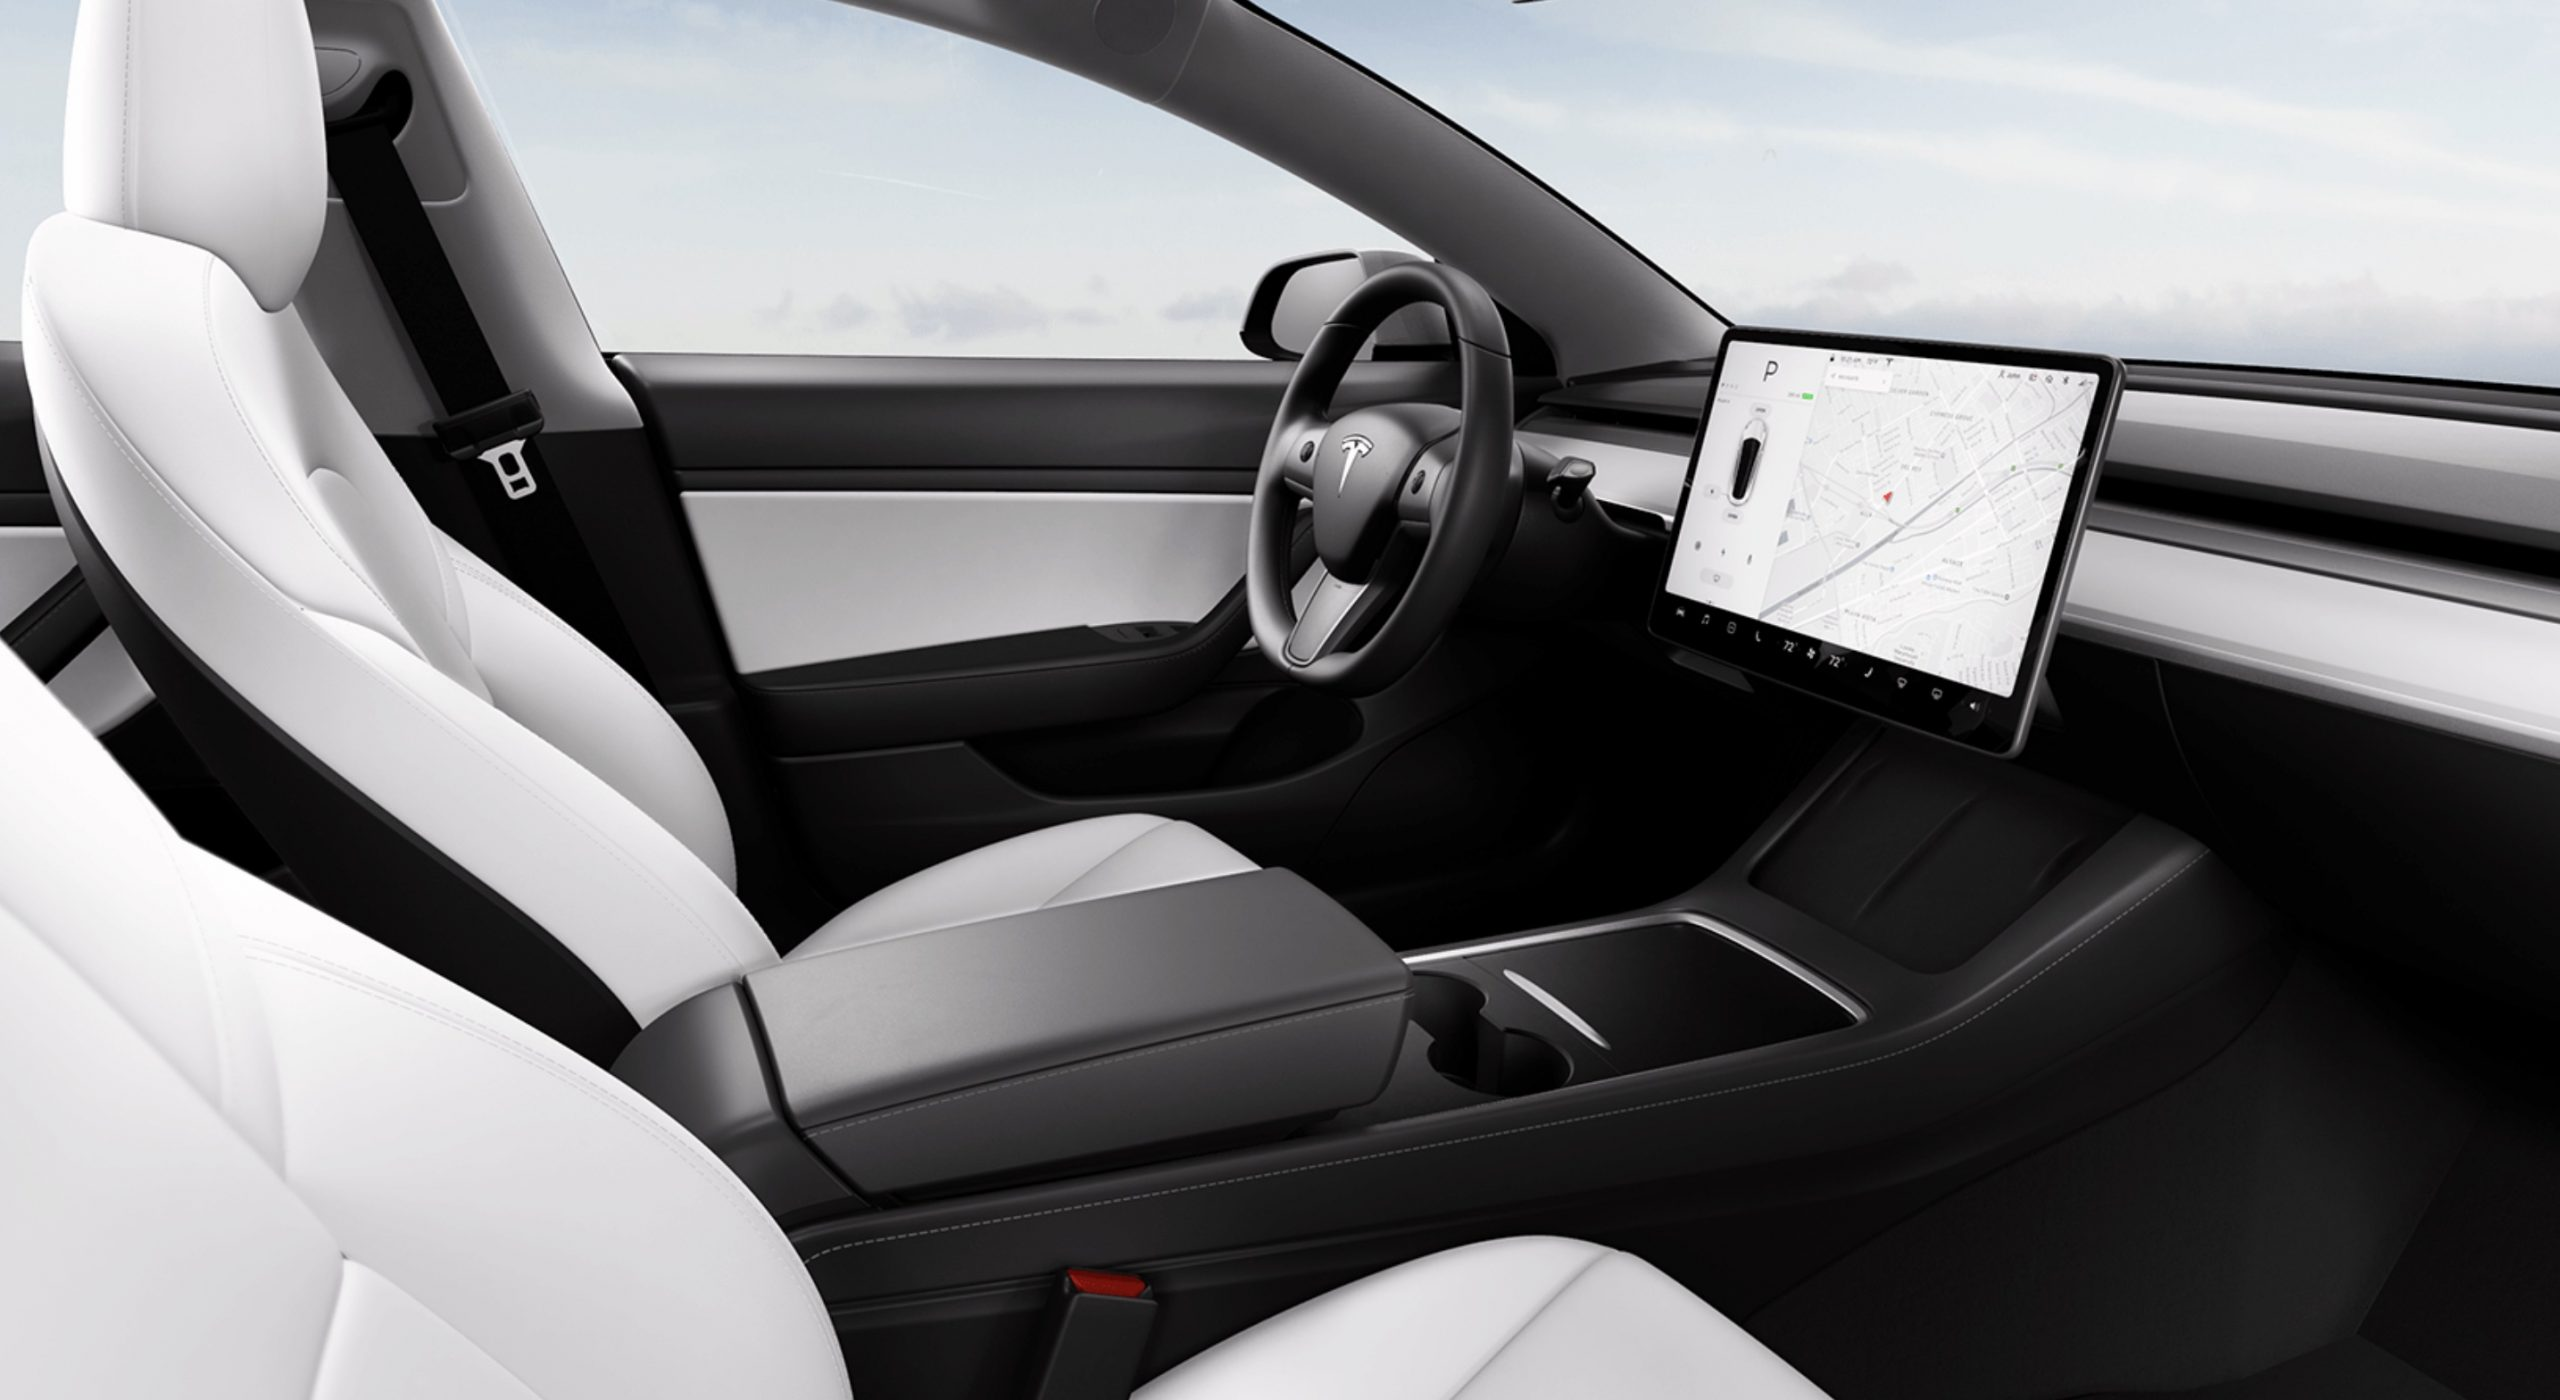 tesla-cabin-noise-improvement-with-bose-audio-system